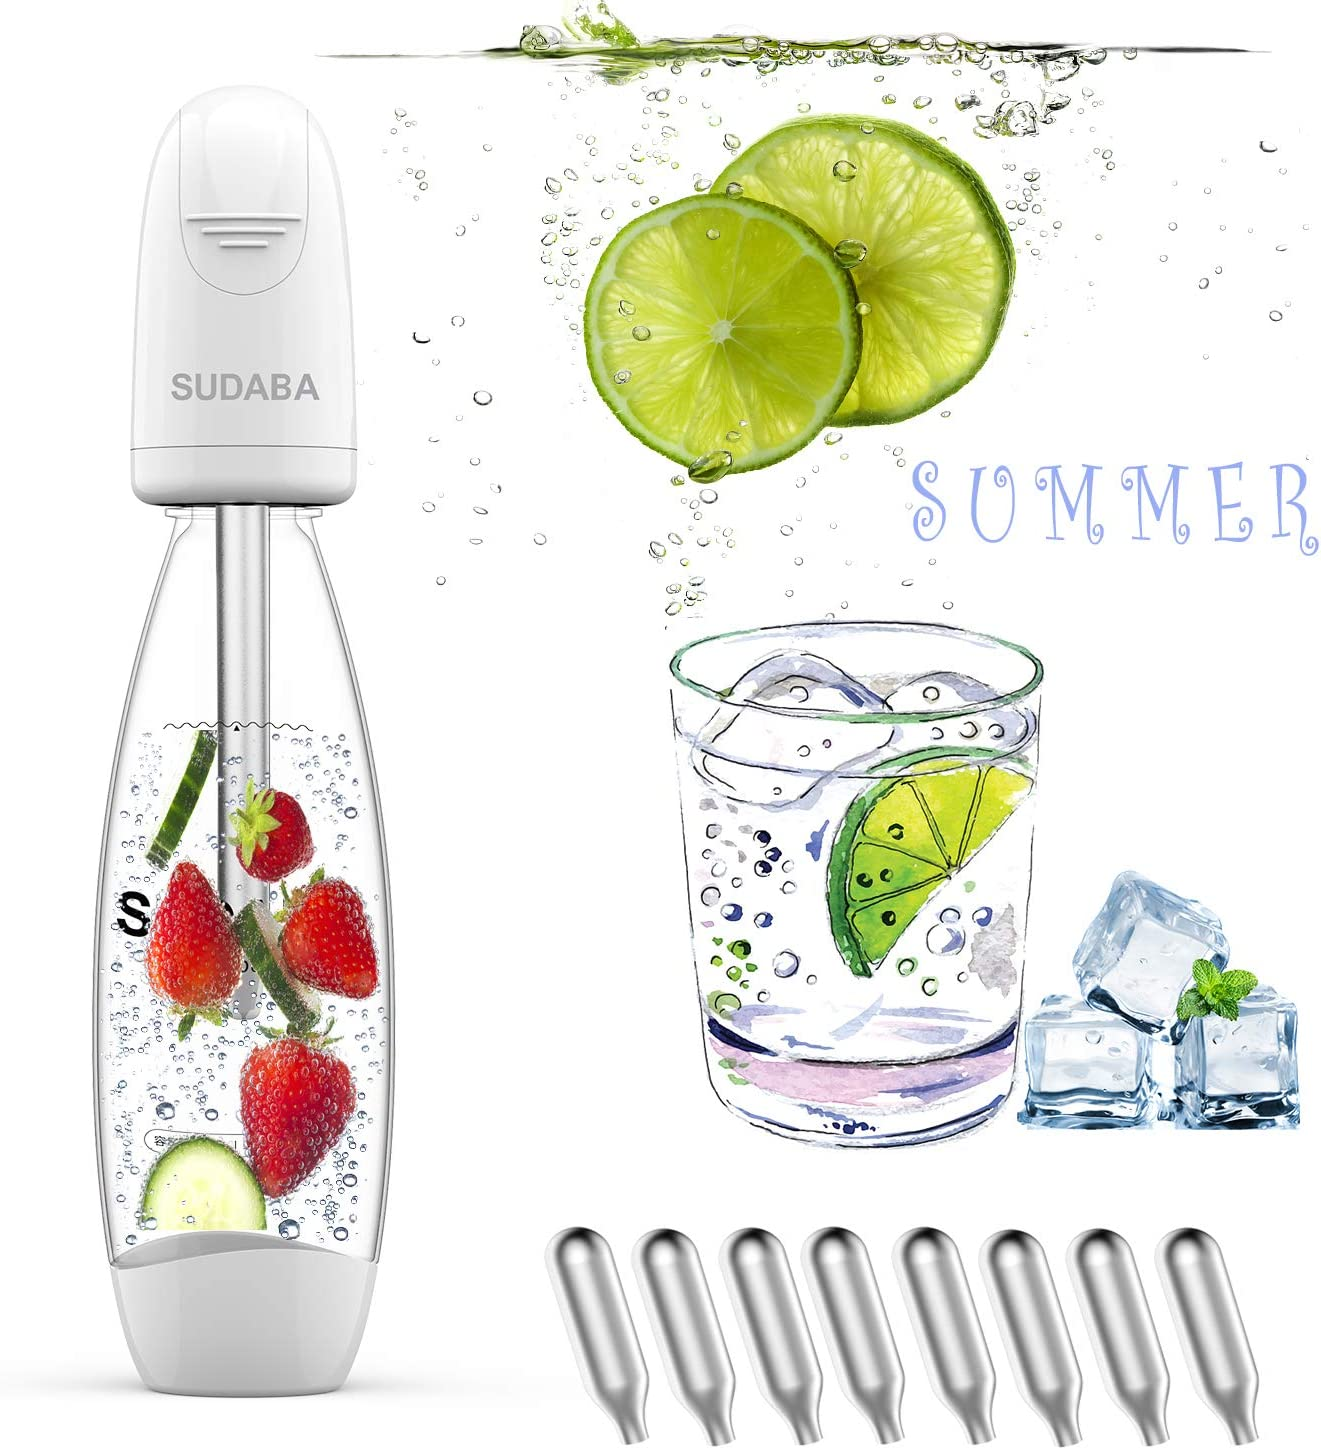 Portable Soda Water Maker Homeow Fizzi Sparkling Water Bottle SUDABA Mini Soda Machines for Homemade Soda Stream BPA free 8 Standard 8g CO2 Cylinder Canister Charger Seltzer Carbonated Summer